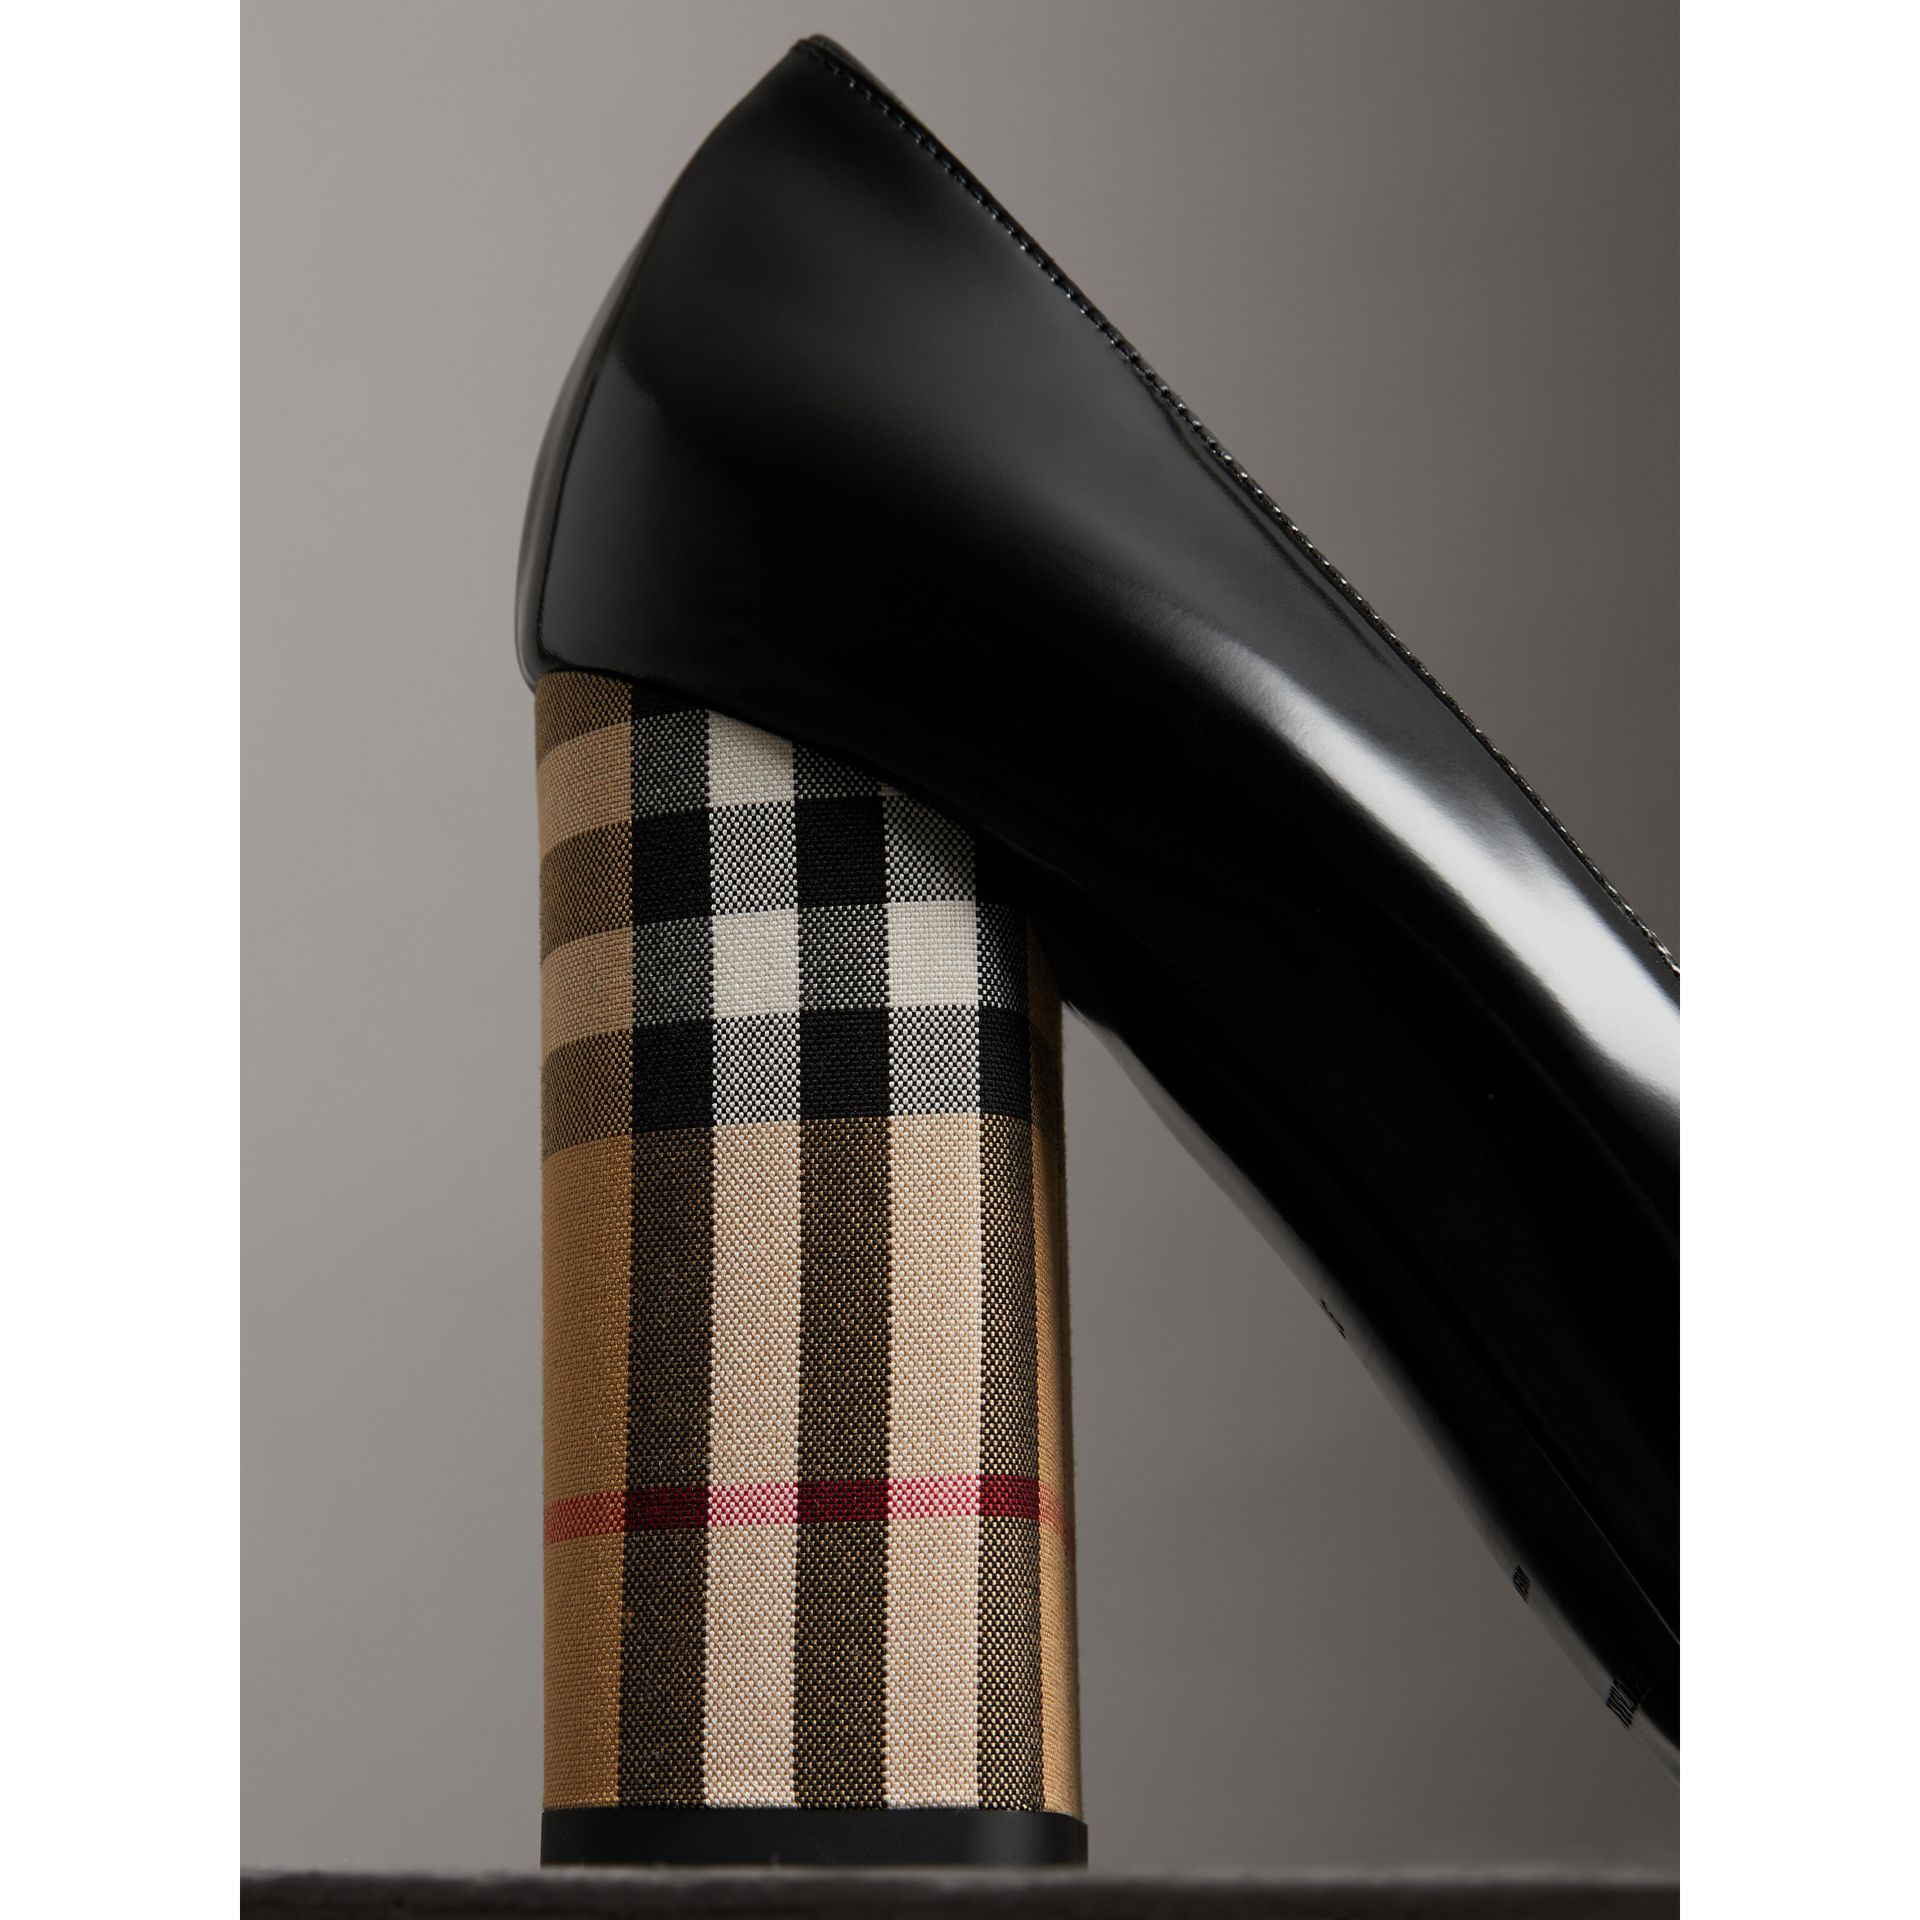 Patent Leather and Vintage Check Block-heel Pumps in Black - Women | Burberry Australia - gallery image 1